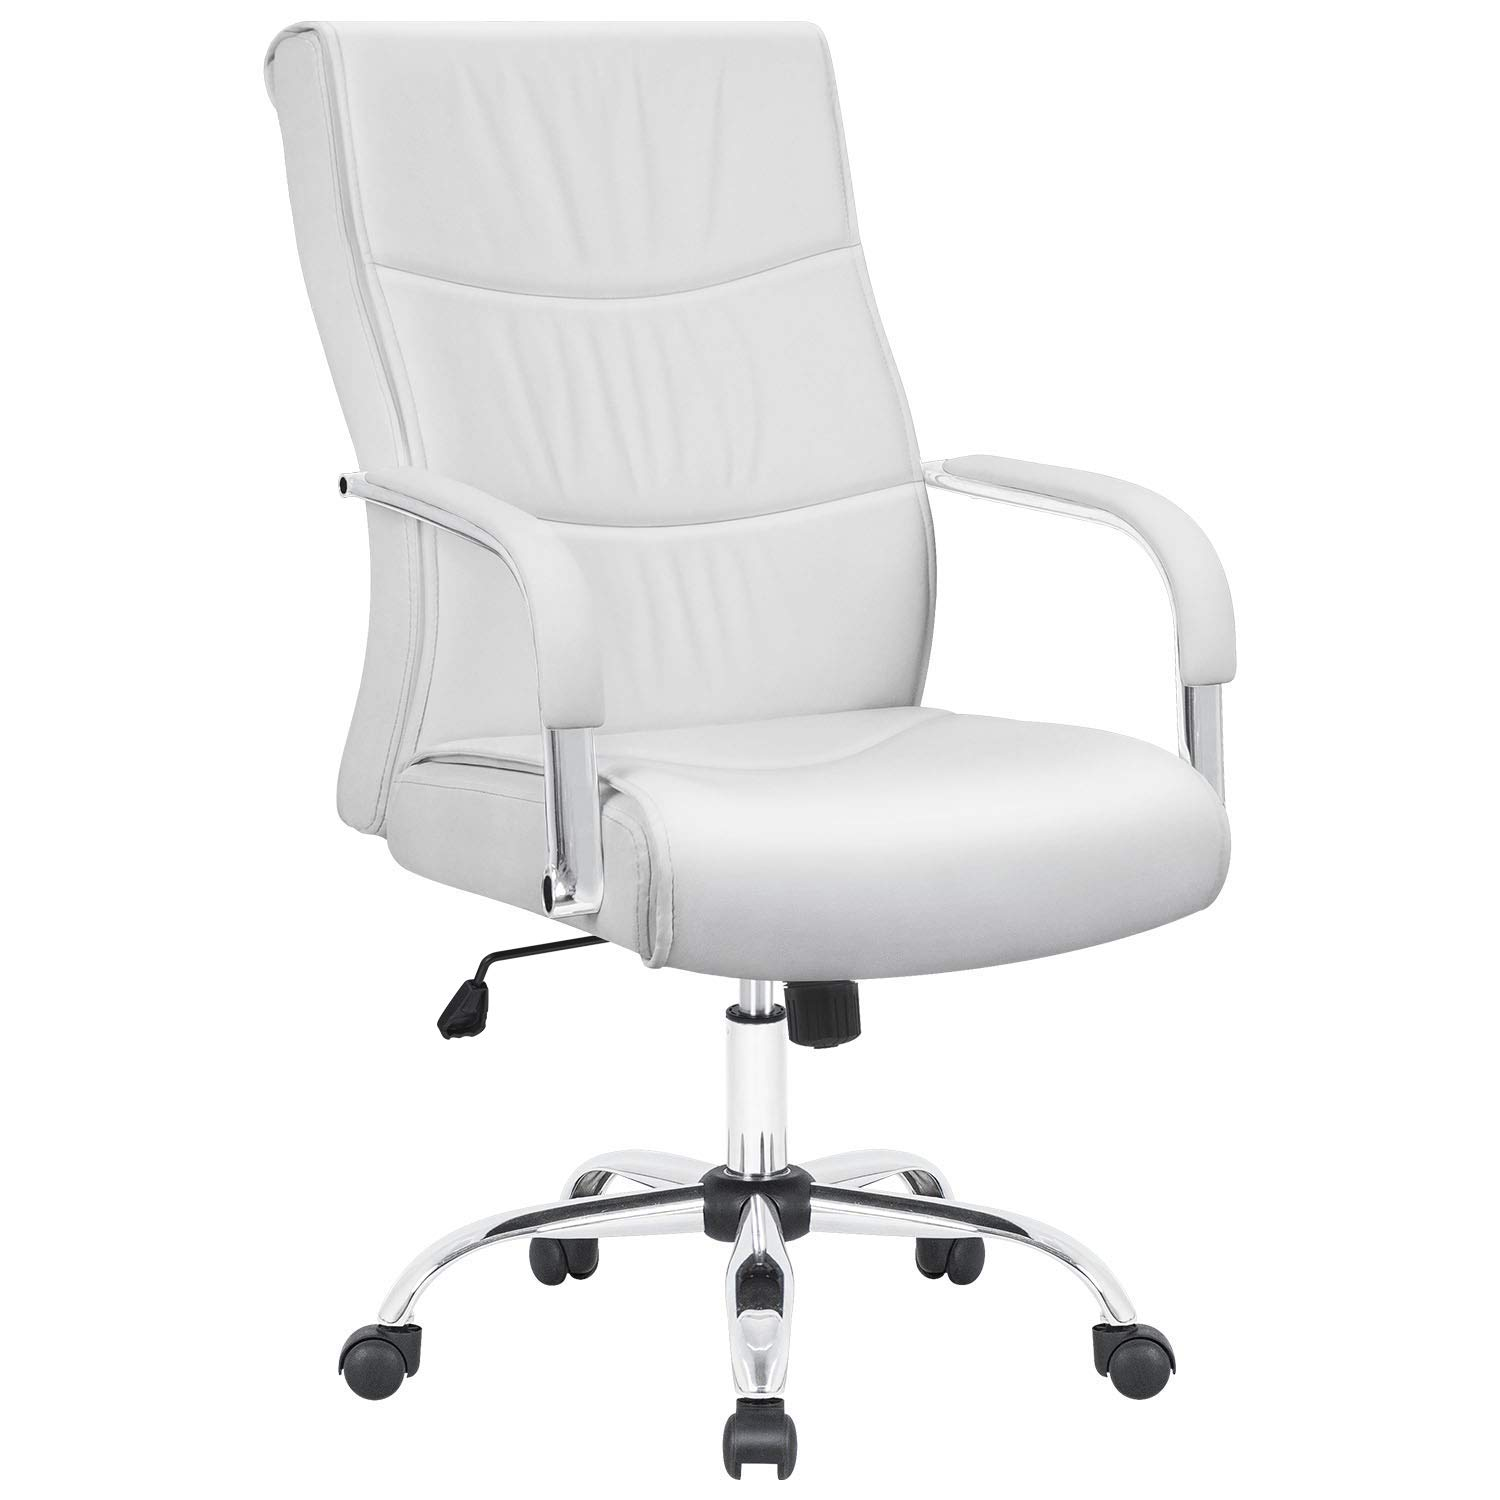 Furmax High Back Office Desk Chair Conference Leather Executive with Padded Armrests,Adjustable Ergonomic Swivel Task Chair with Lumbar Support(White) by Furmax (Image #1)